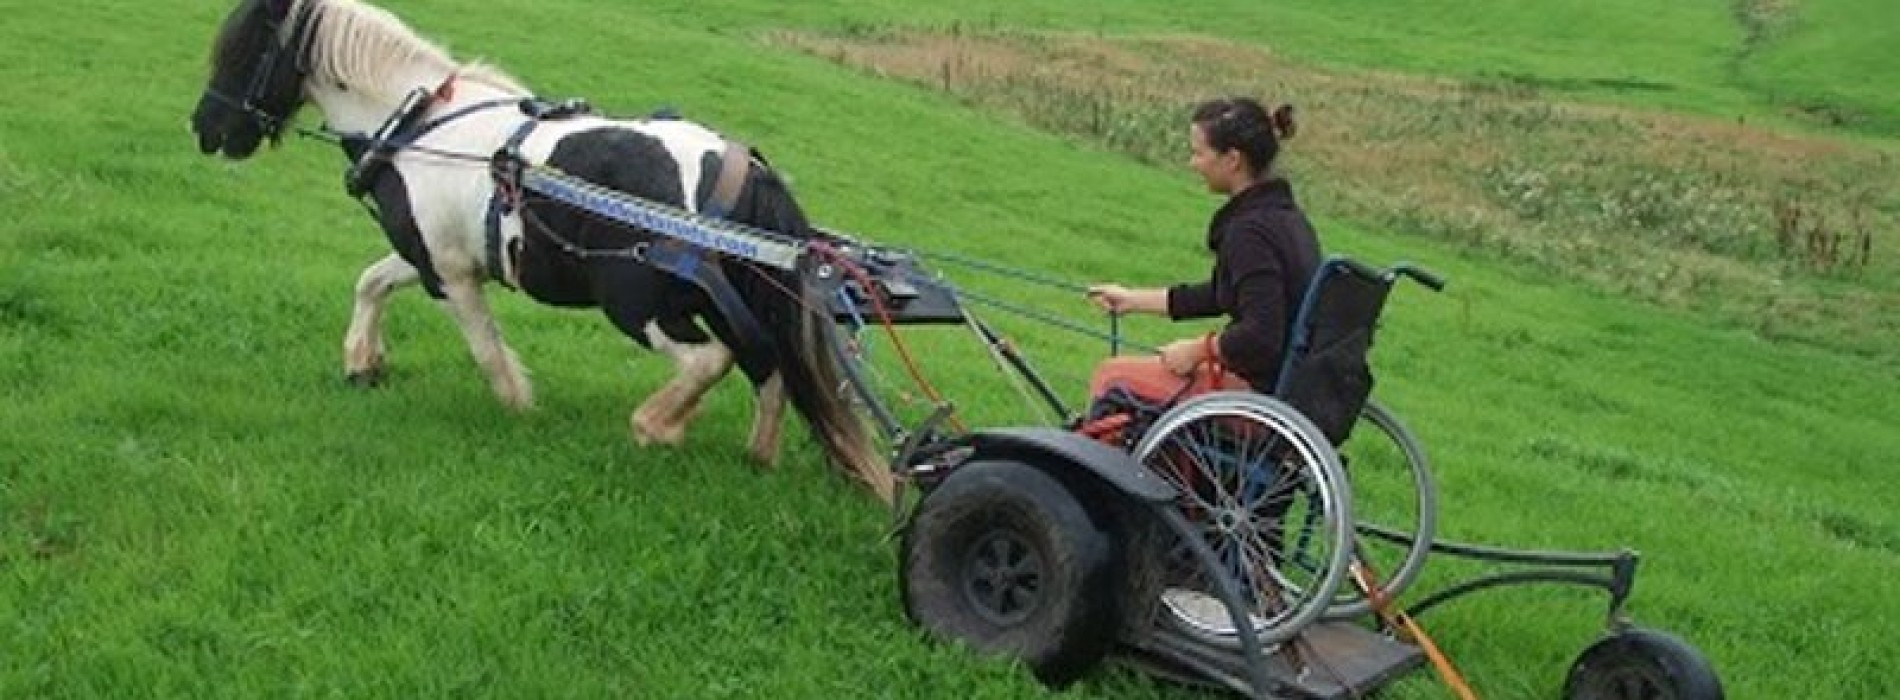 Pony Access: making horses part of disabled people's lives